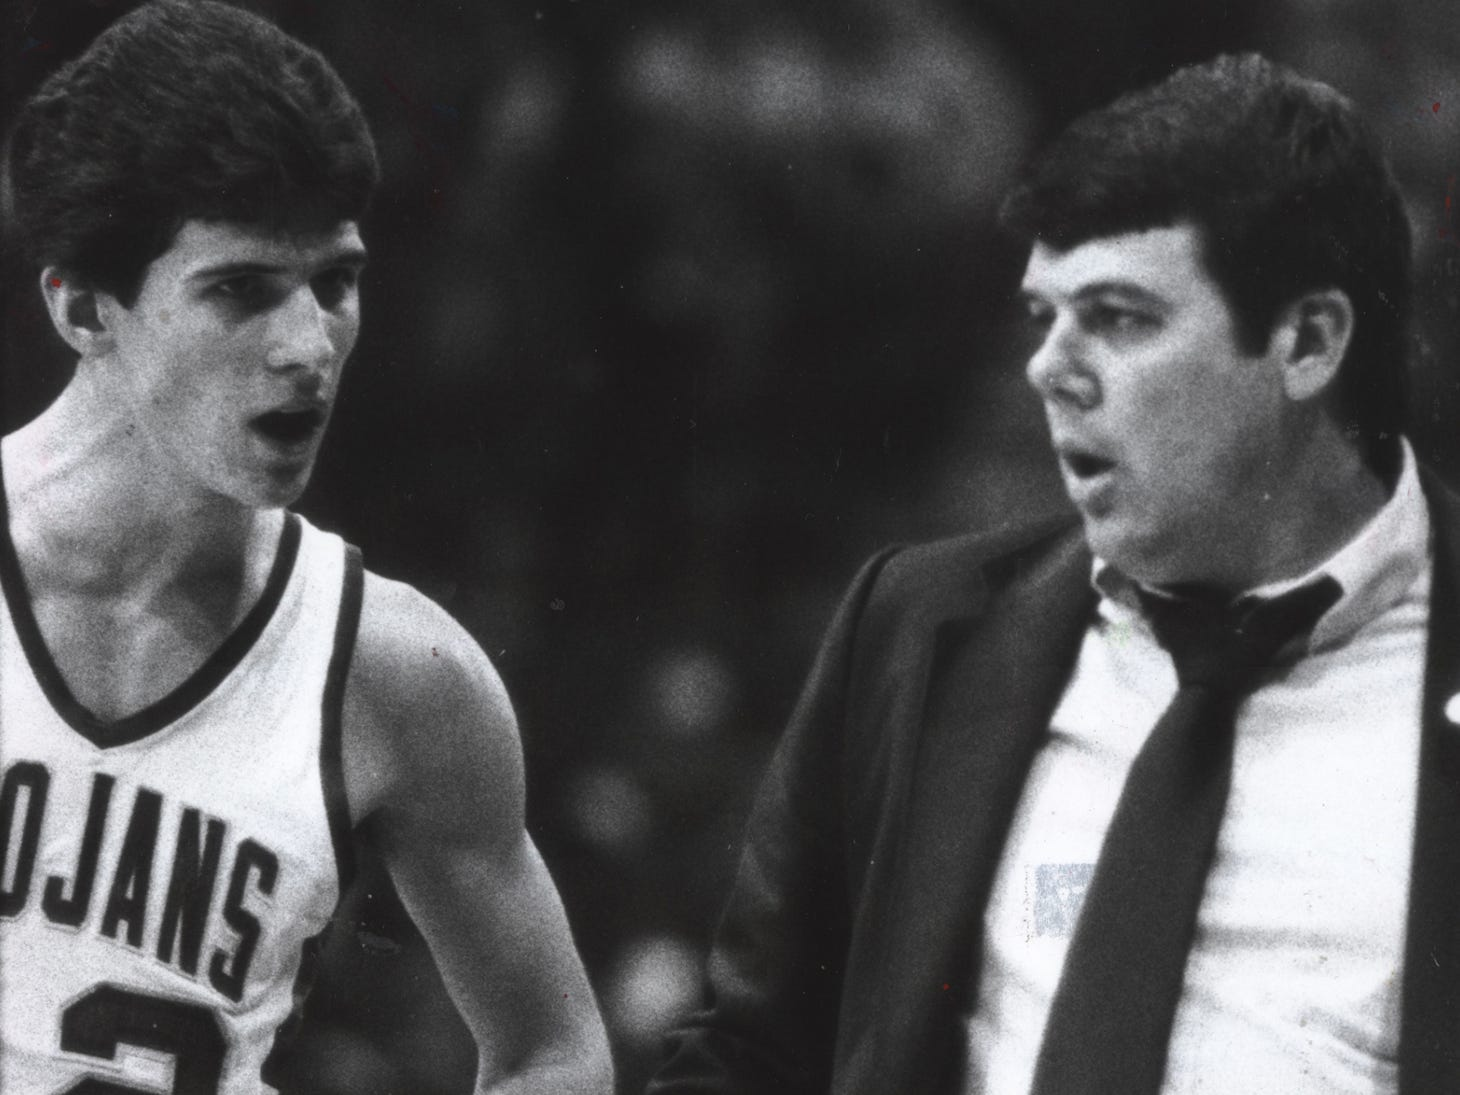 New Castle's Steve Alford talks to his coach and father, Sam Alford, during the Trojans' 79-64 victory over Broad Ripple in the 1983 state high school playoffs at Hinkle Fieldhouse. Alford scored 57 points in the game.